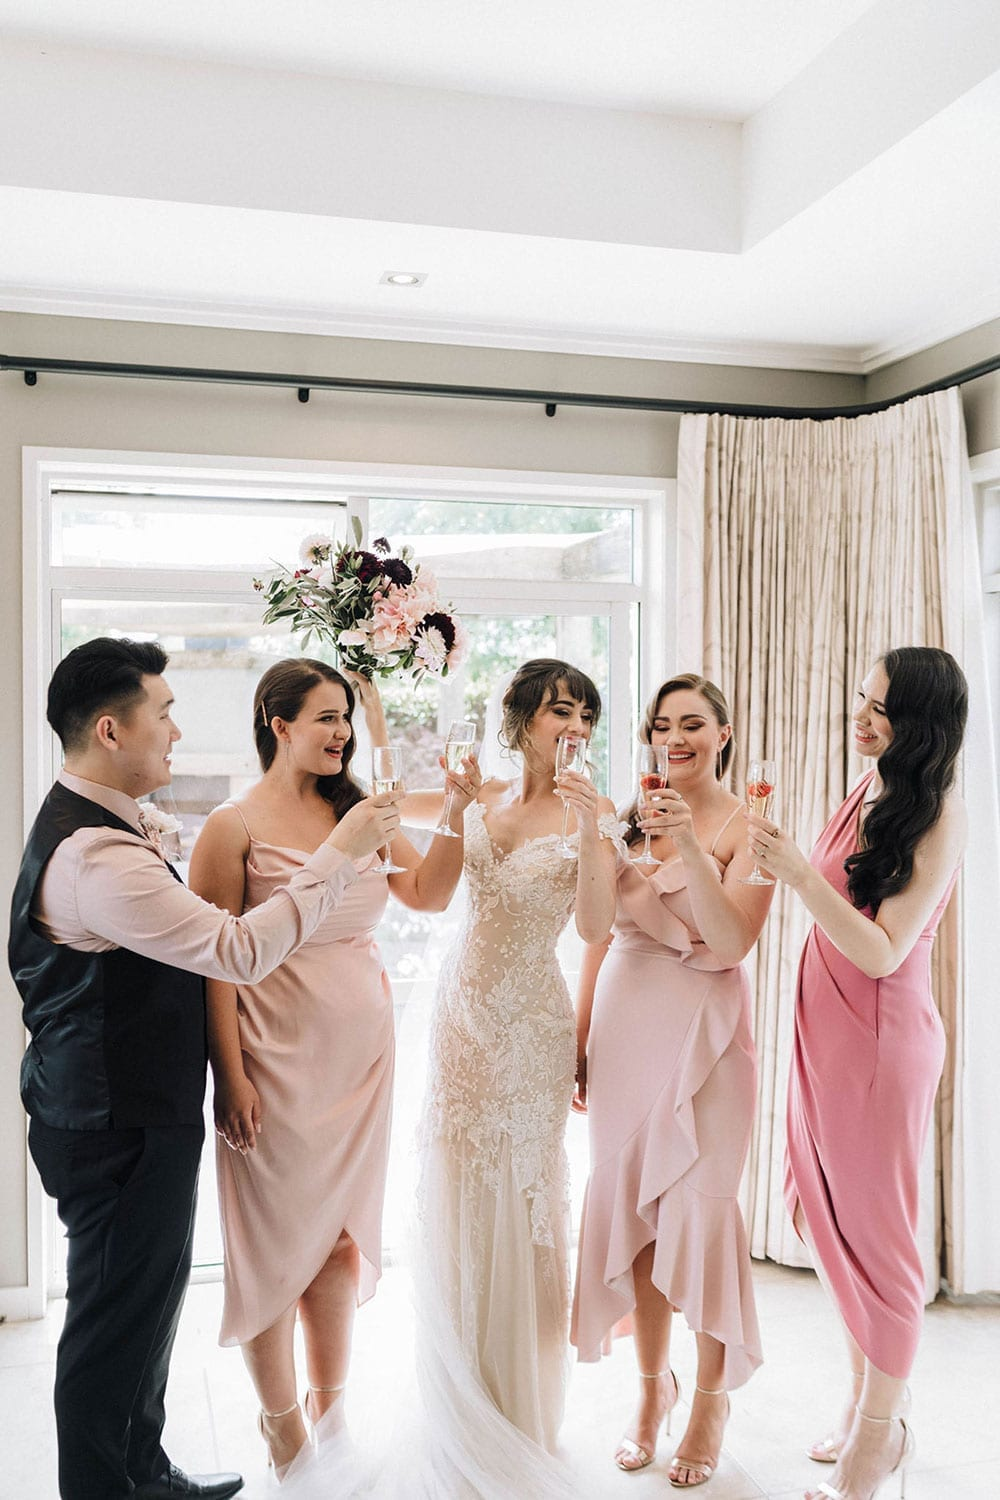 Vinka Design Features Real Weddings - bride wearing custom made beaded lace Sasha gown. Bride cheers with bridal party